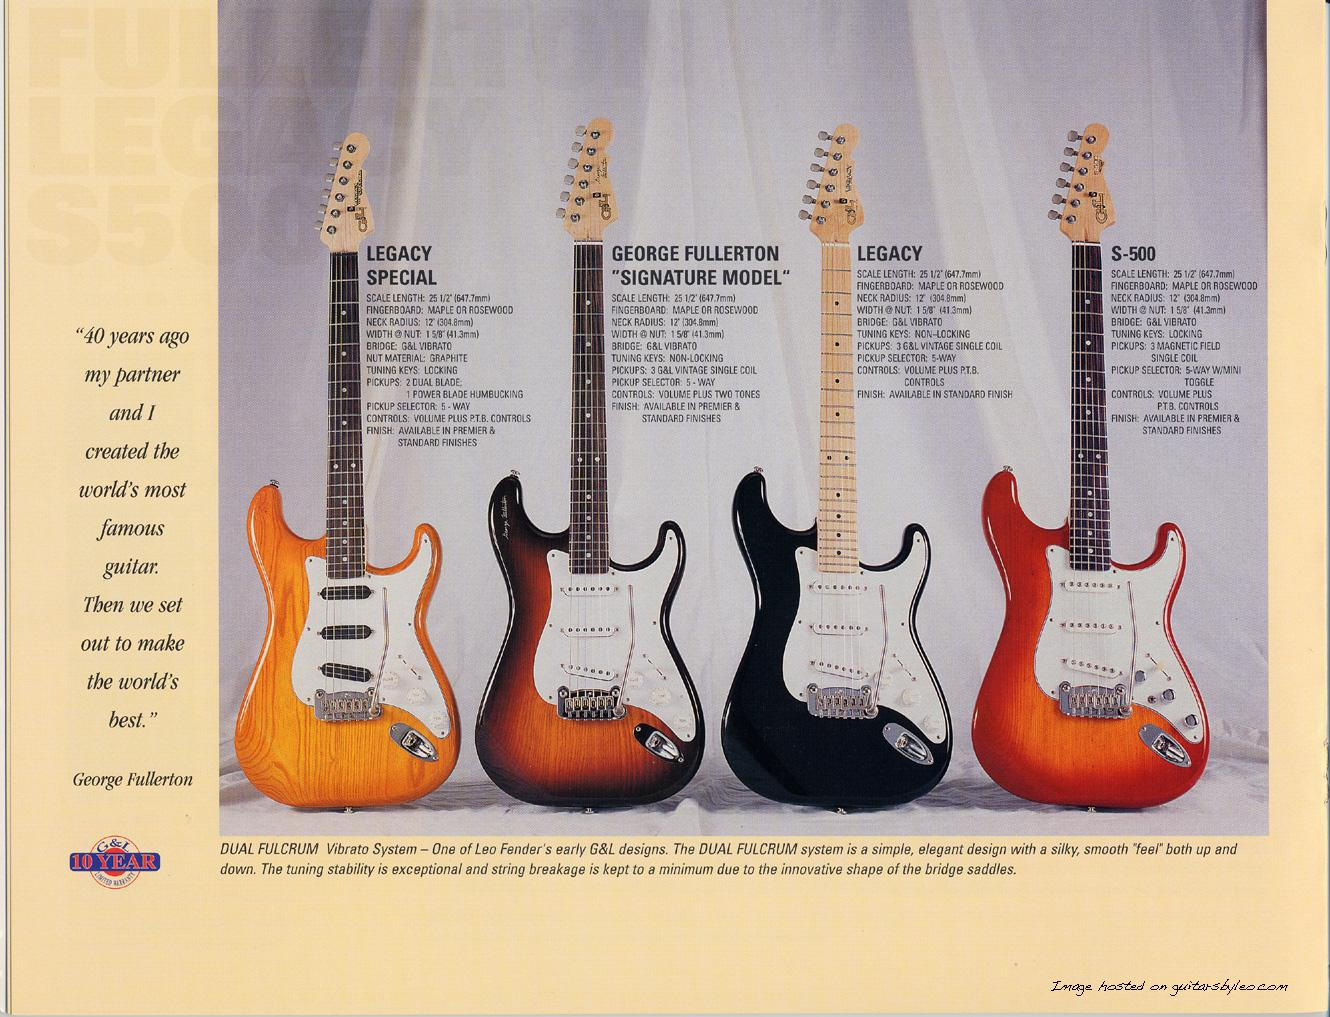 The G&L Discussion Page • View topic - old S-500 model has PTB system?